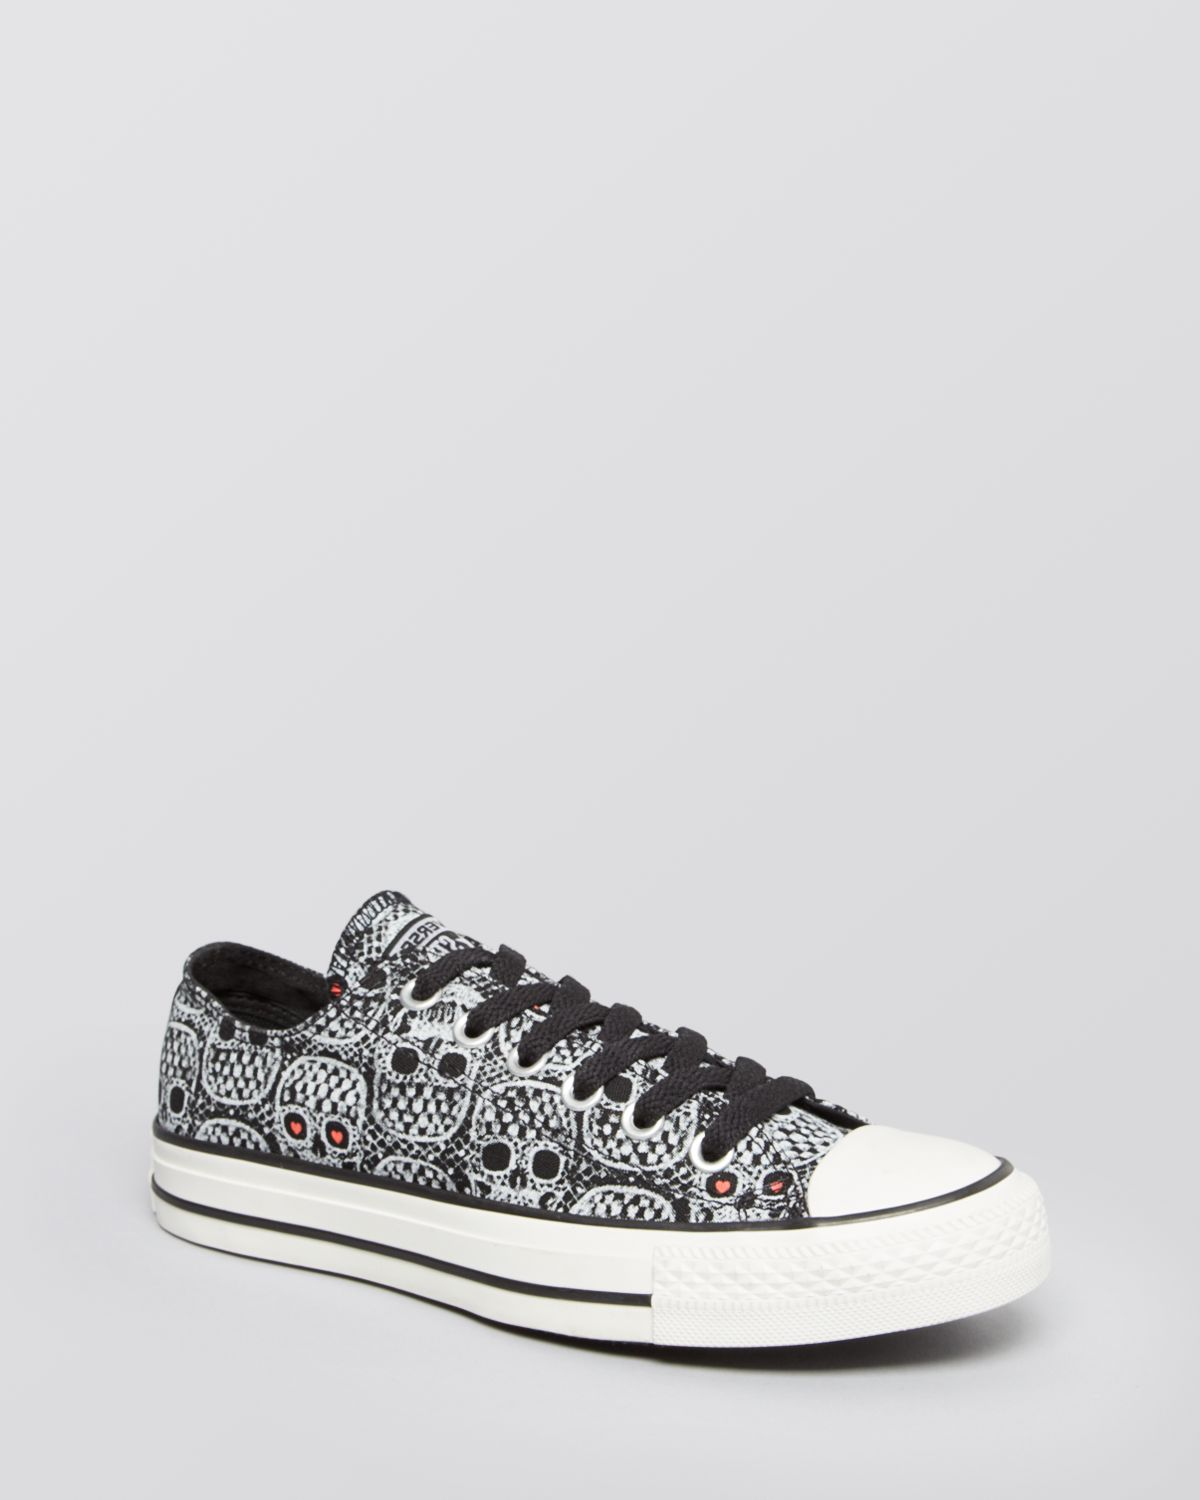 74fb5bb61af4 Lyst - Converse Lace Up Sneakers All Star Skull Lace Print in Black